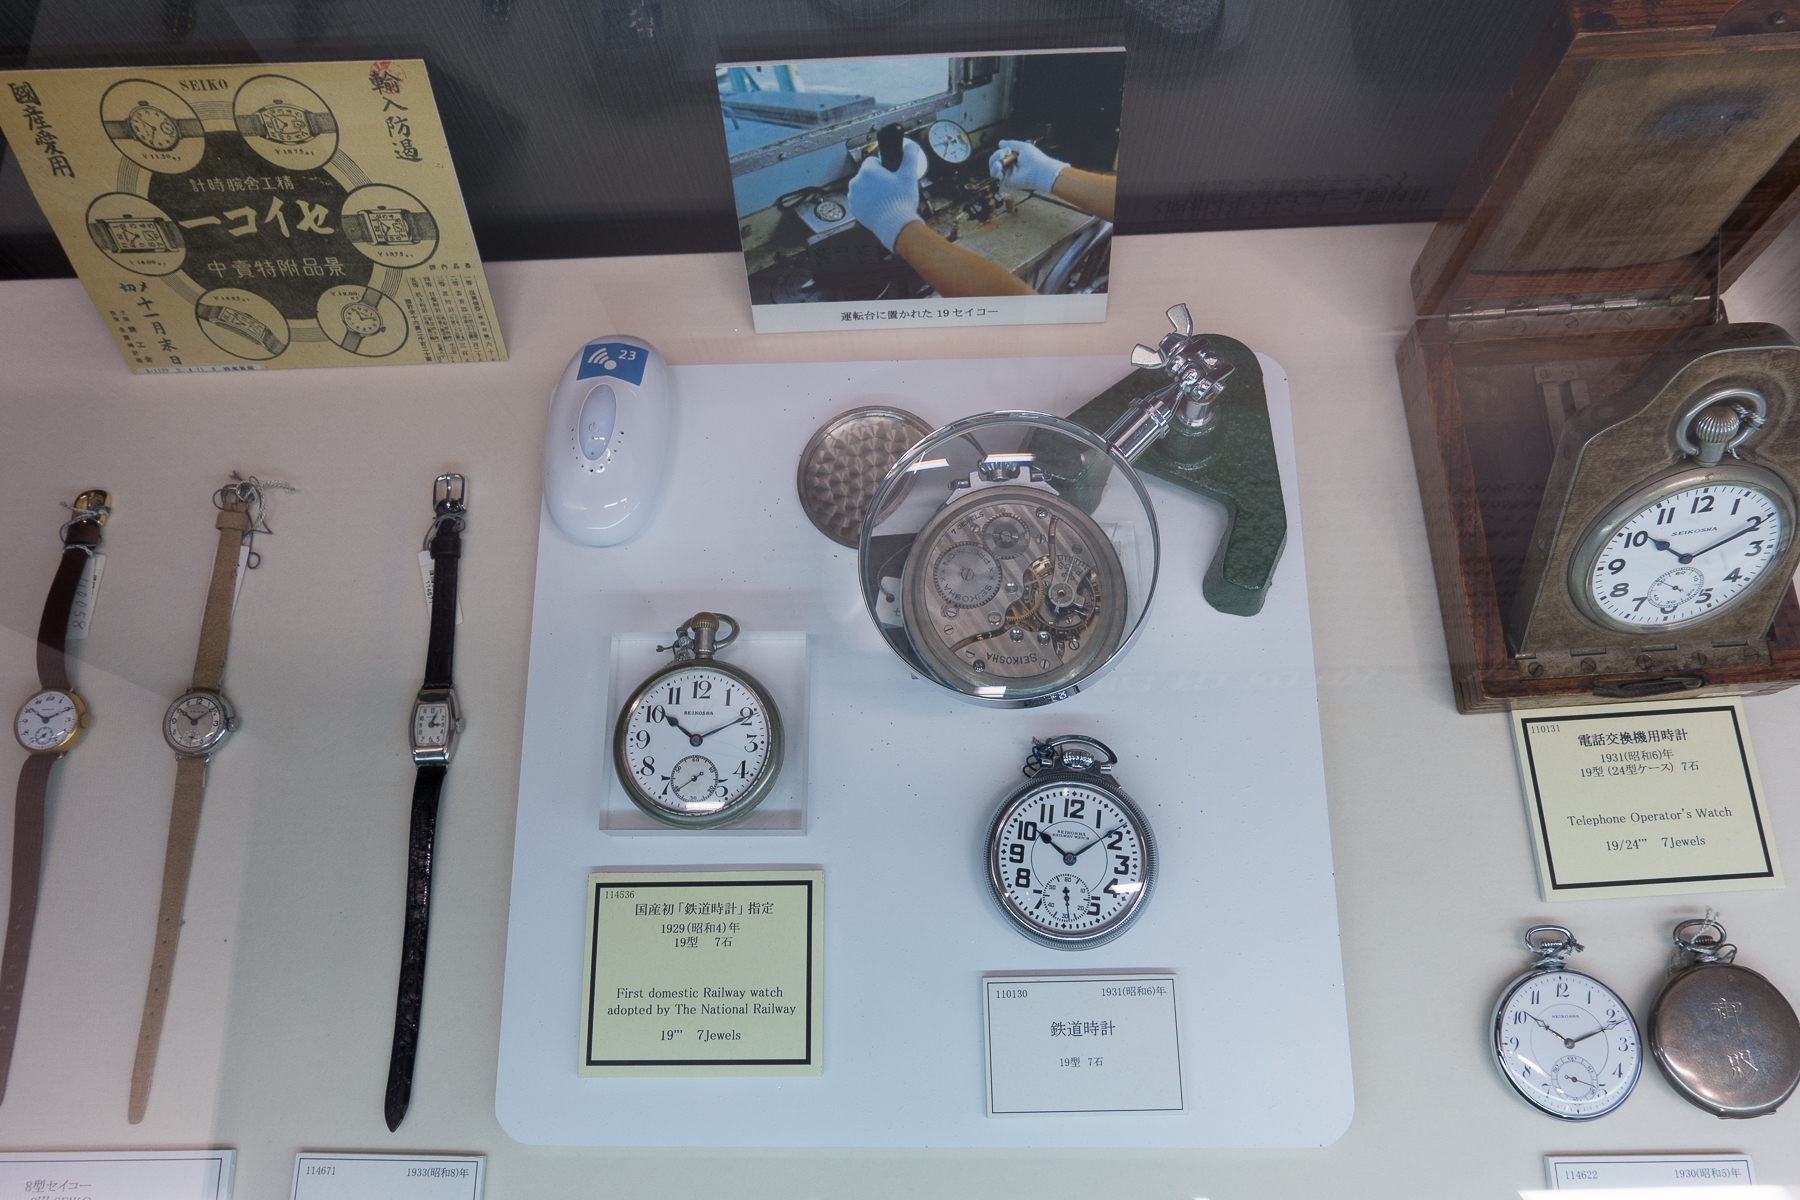 Japan's First Domestic Railroad Watch